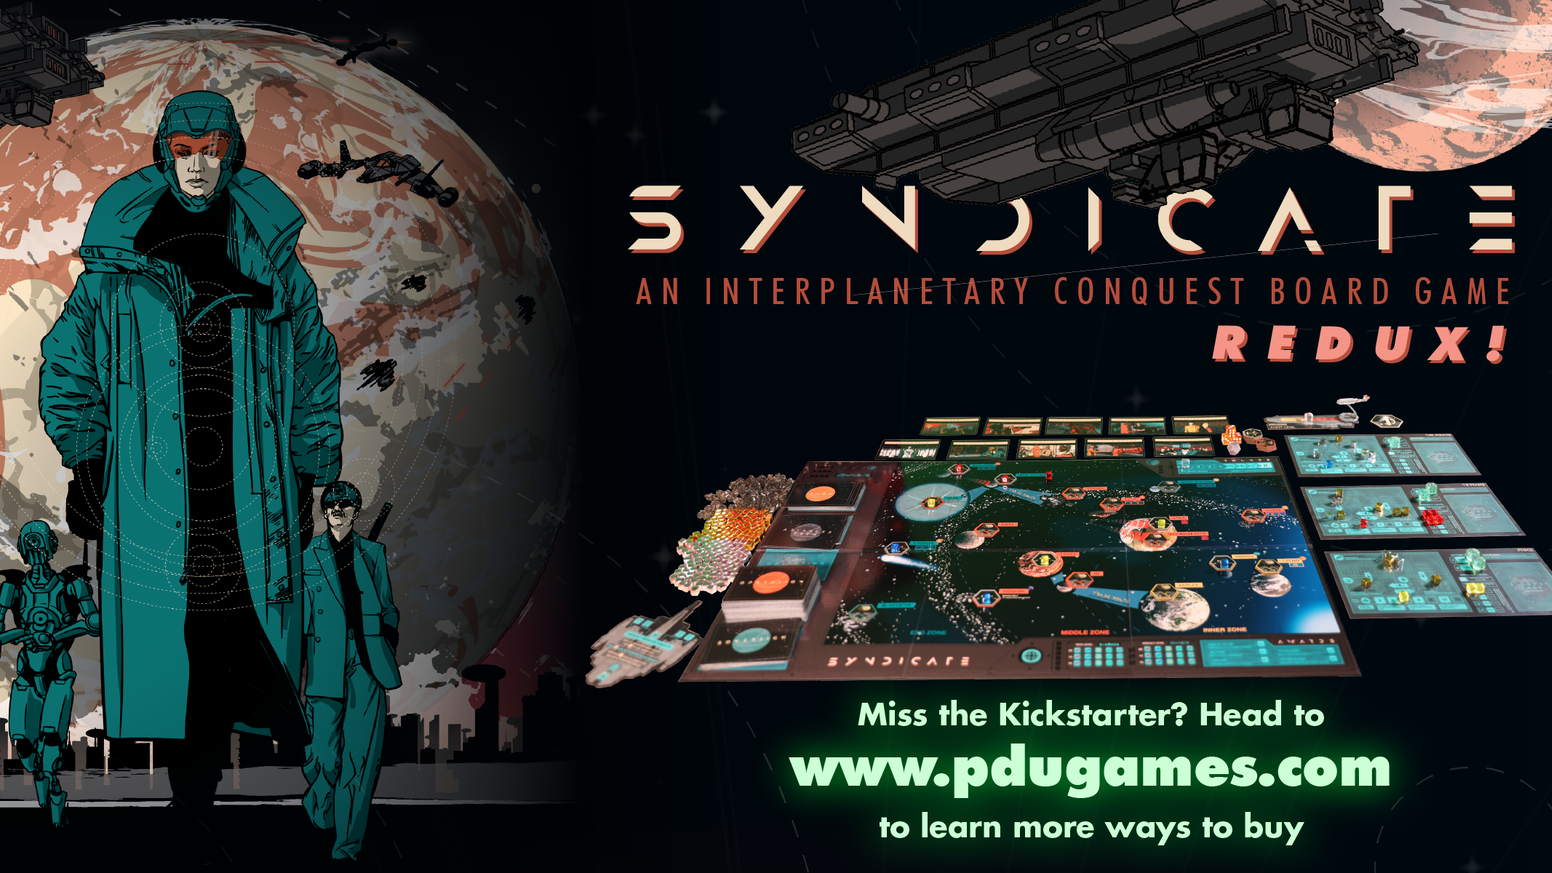 Build the most formidable interplanetary criminal empire in this new thematic sci-fi board game.